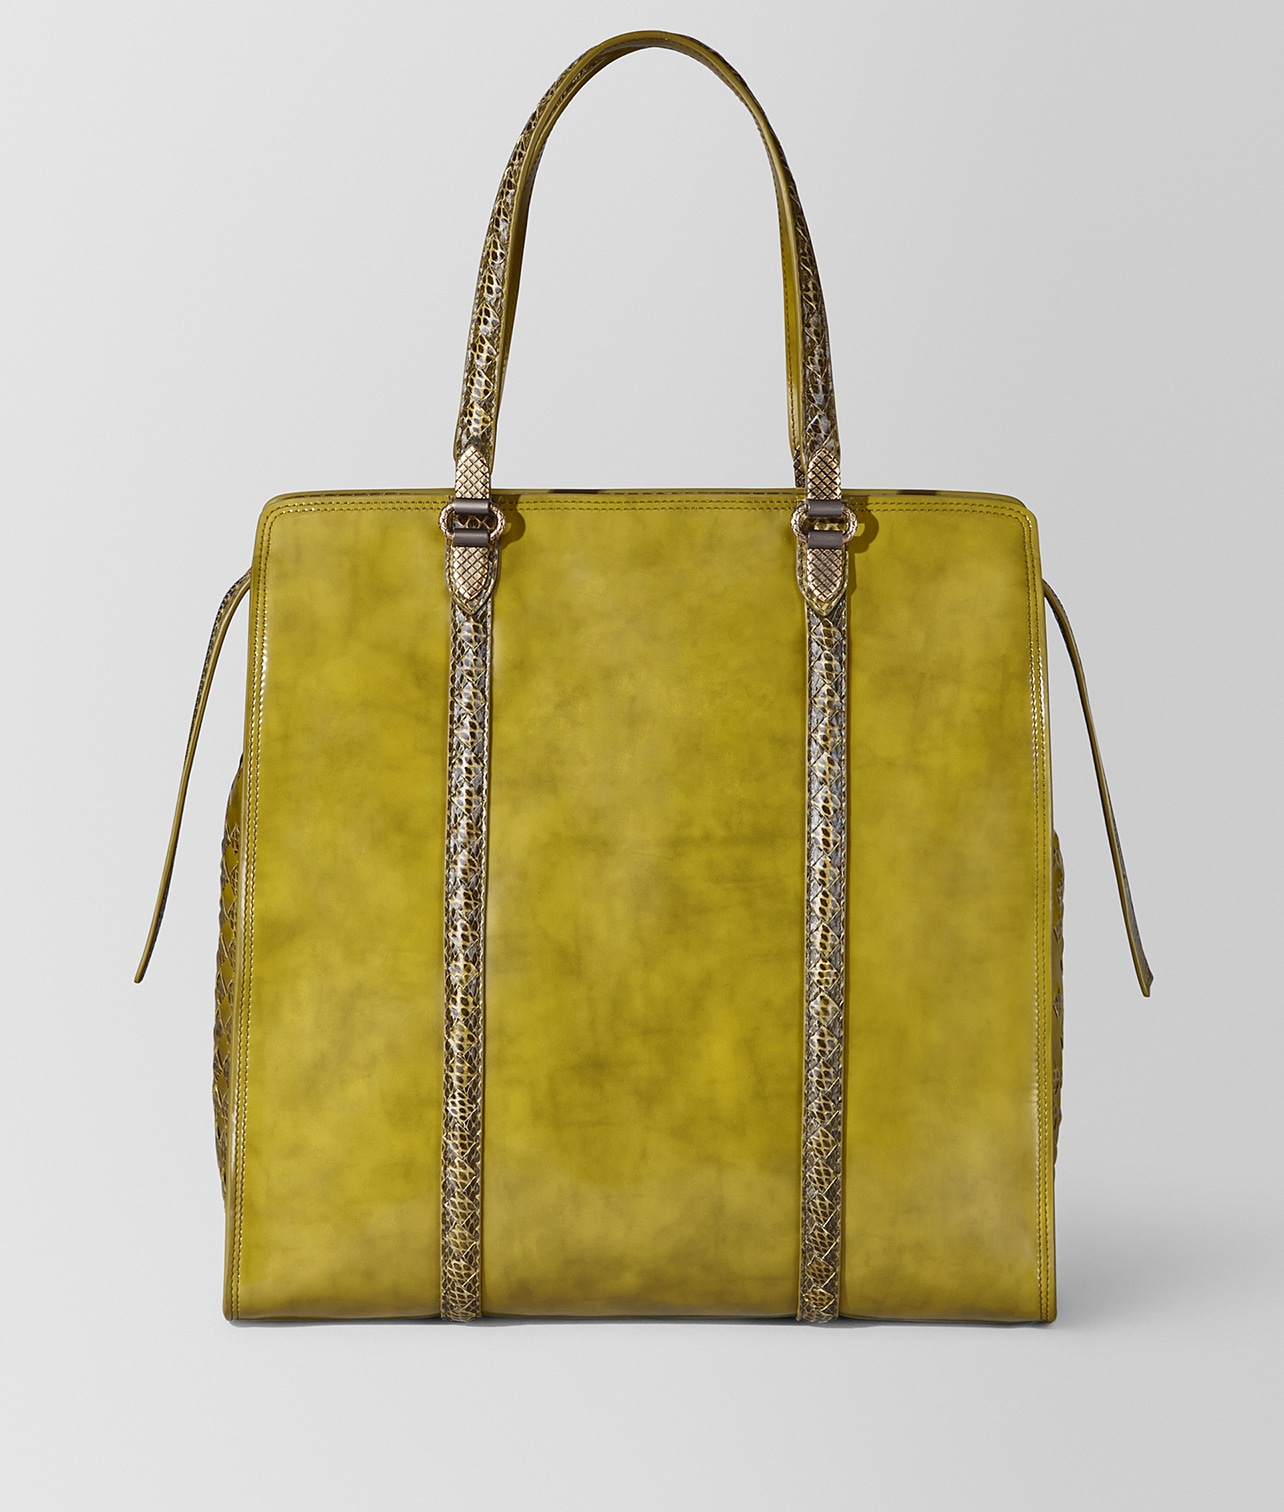 0837182ead Bottega Veneta Bag Price List Reference Guide